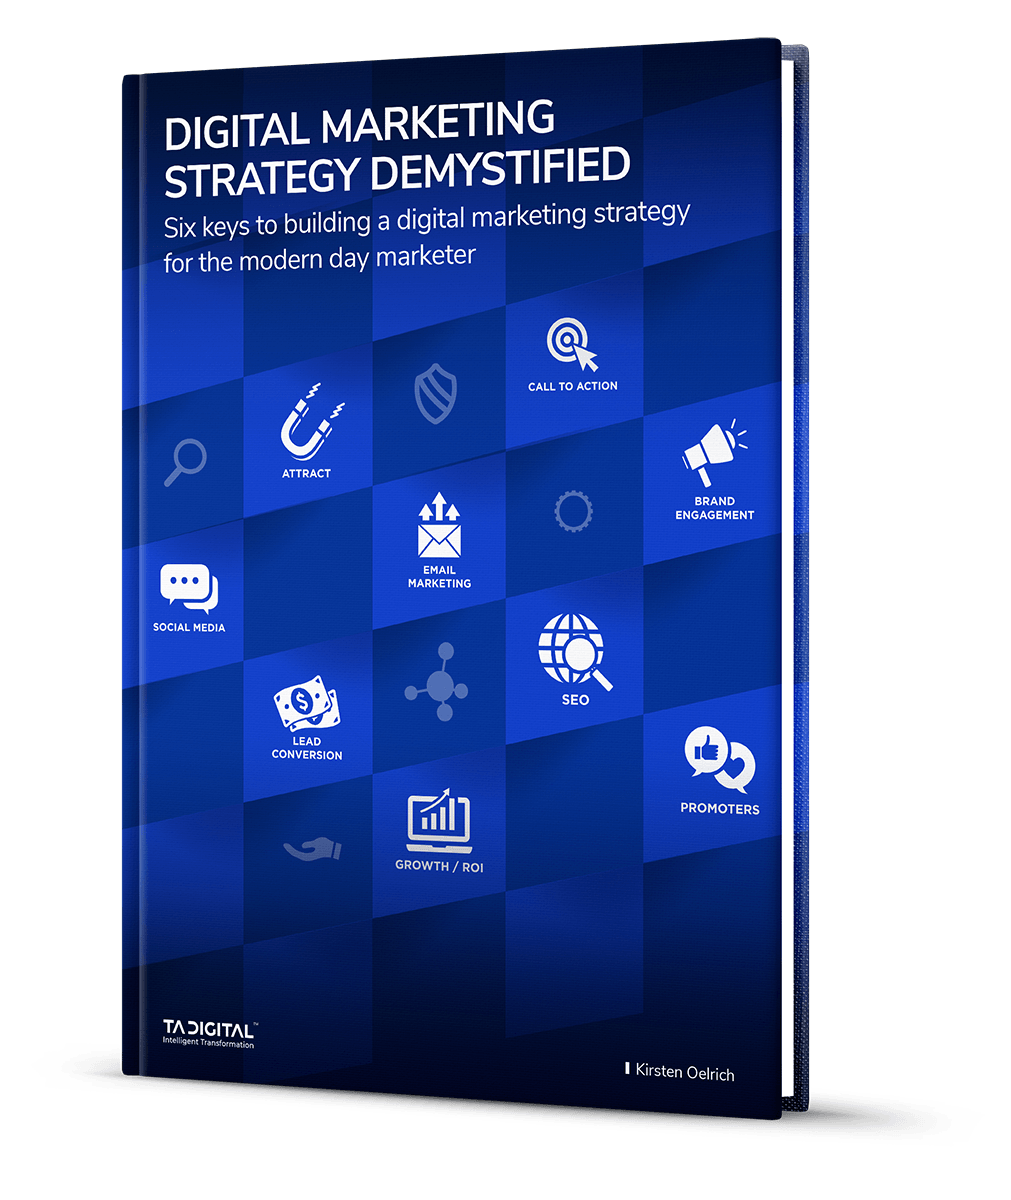 Download Six Keys to Building a Digital Marketing Strategy Guide